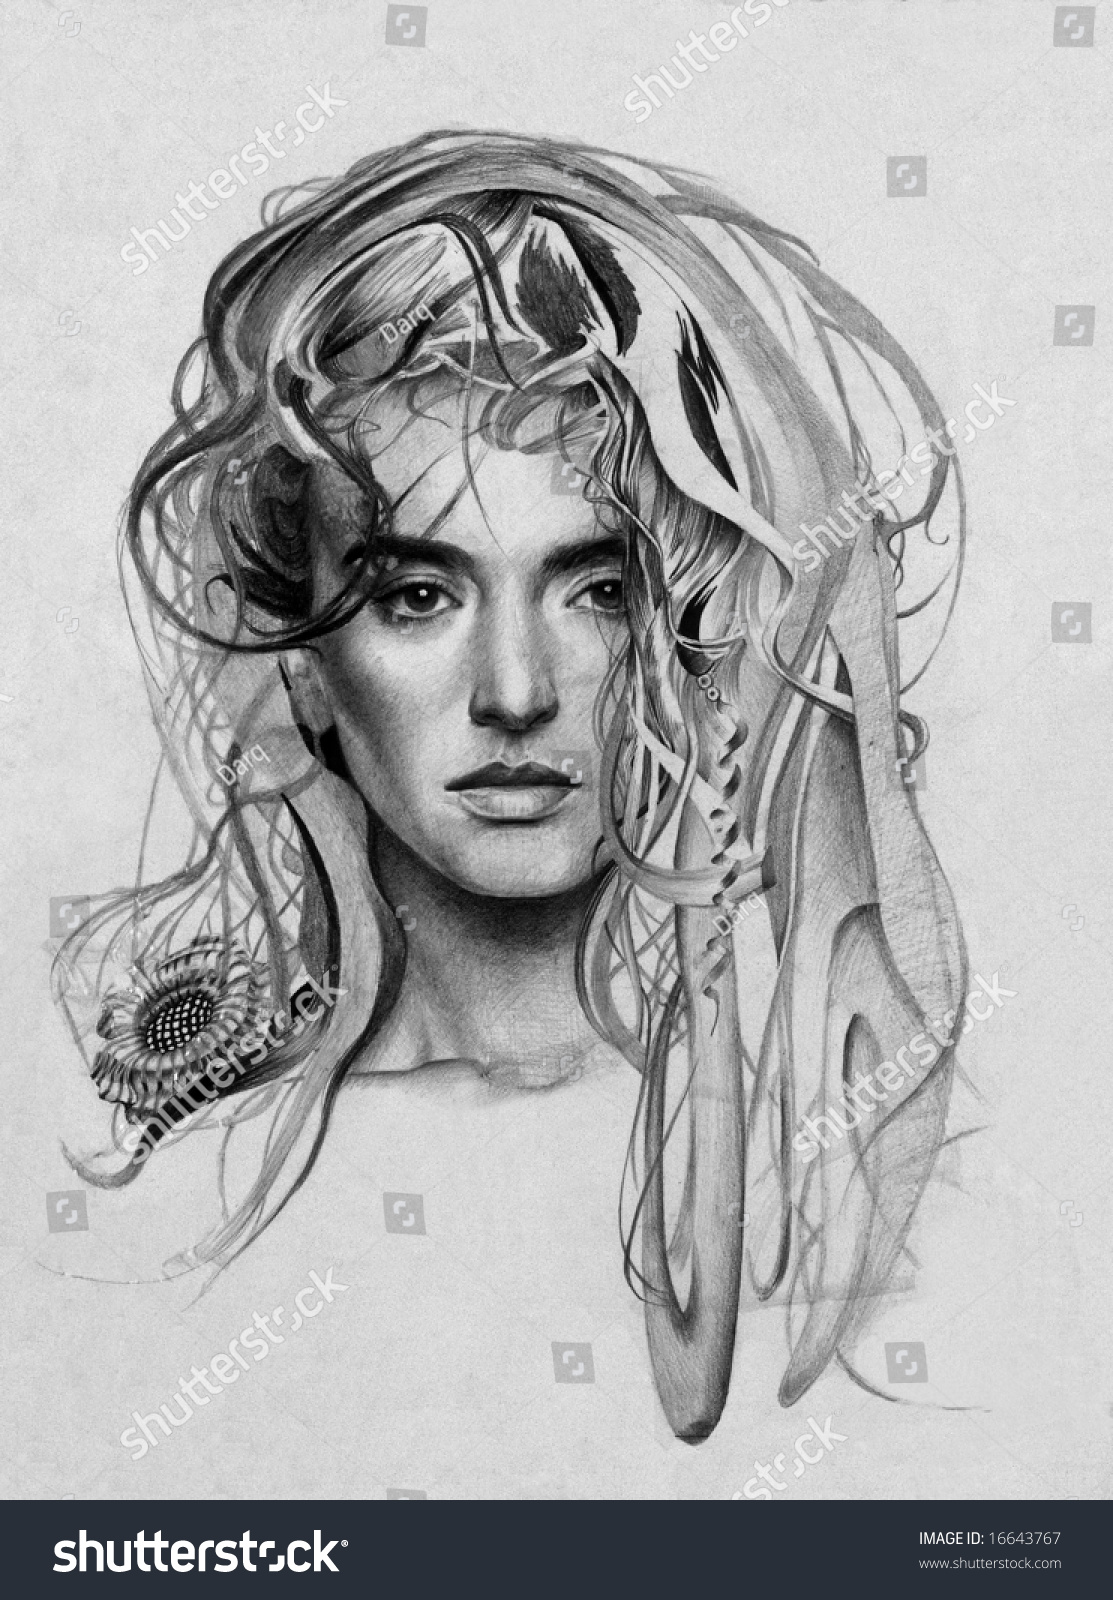 My own pencil drawing of young lady with fantasy hairs